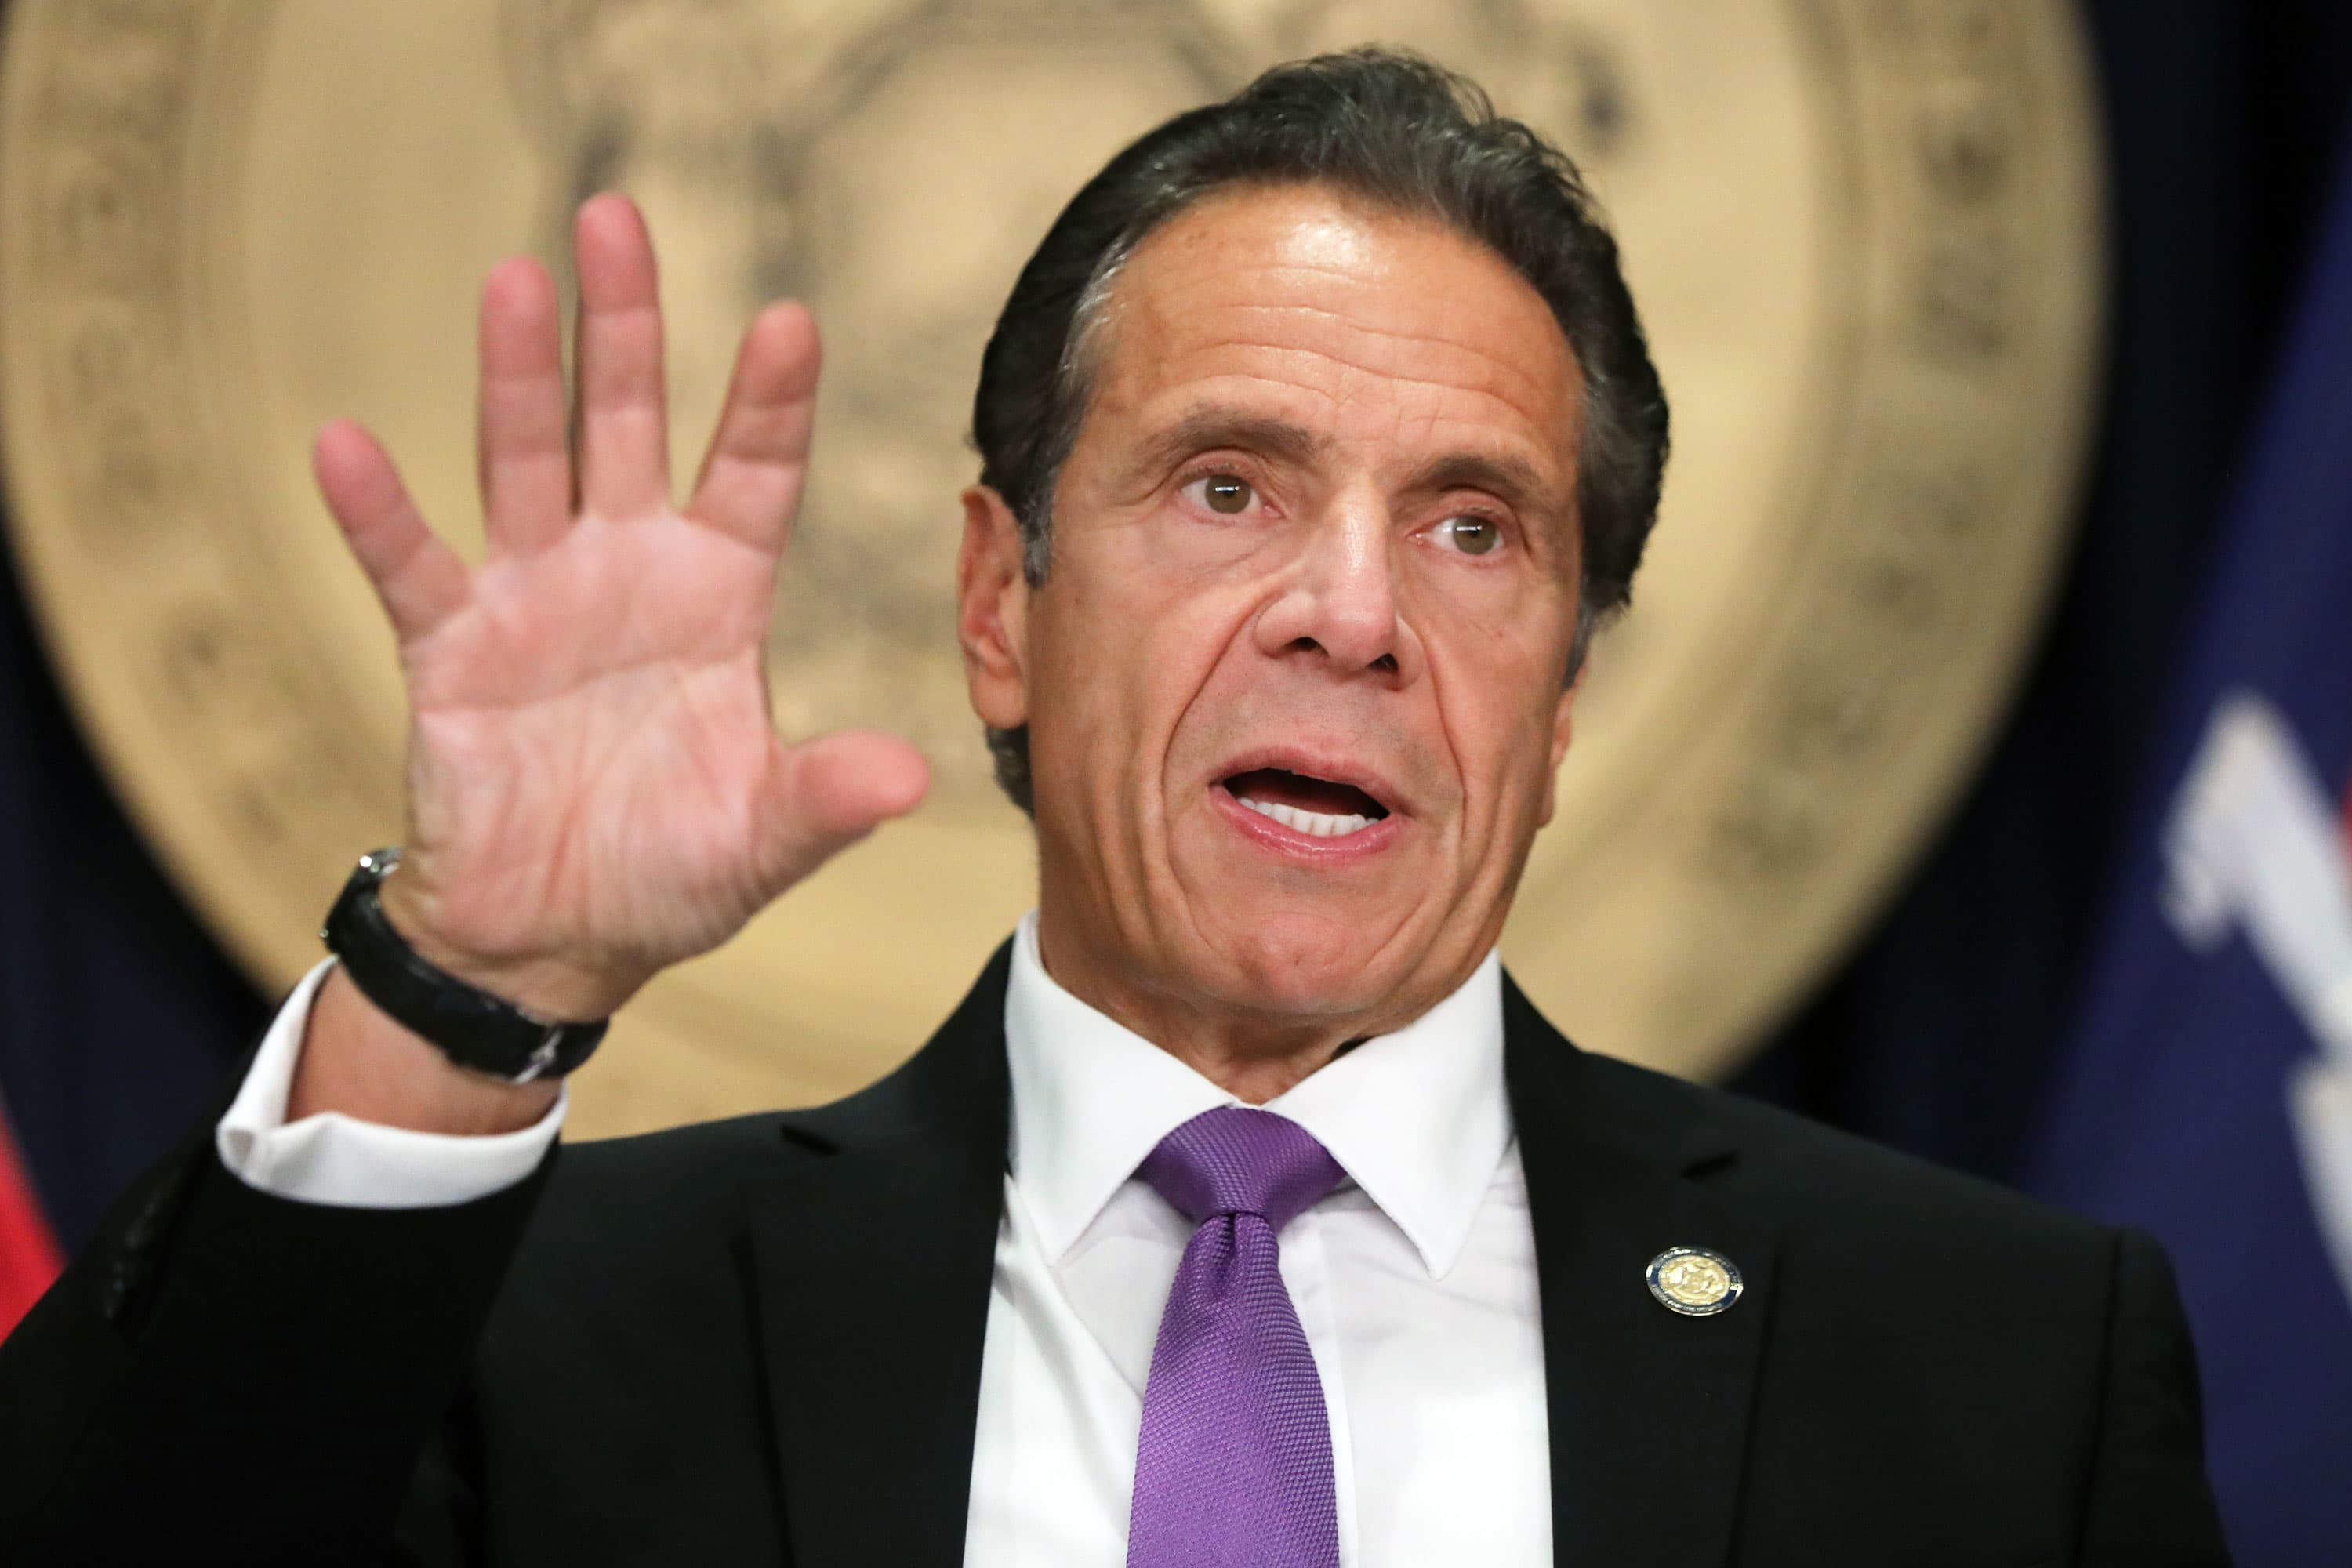 Watch live: New York Gov. Andrew Cuomo holds a press briefing on Covid